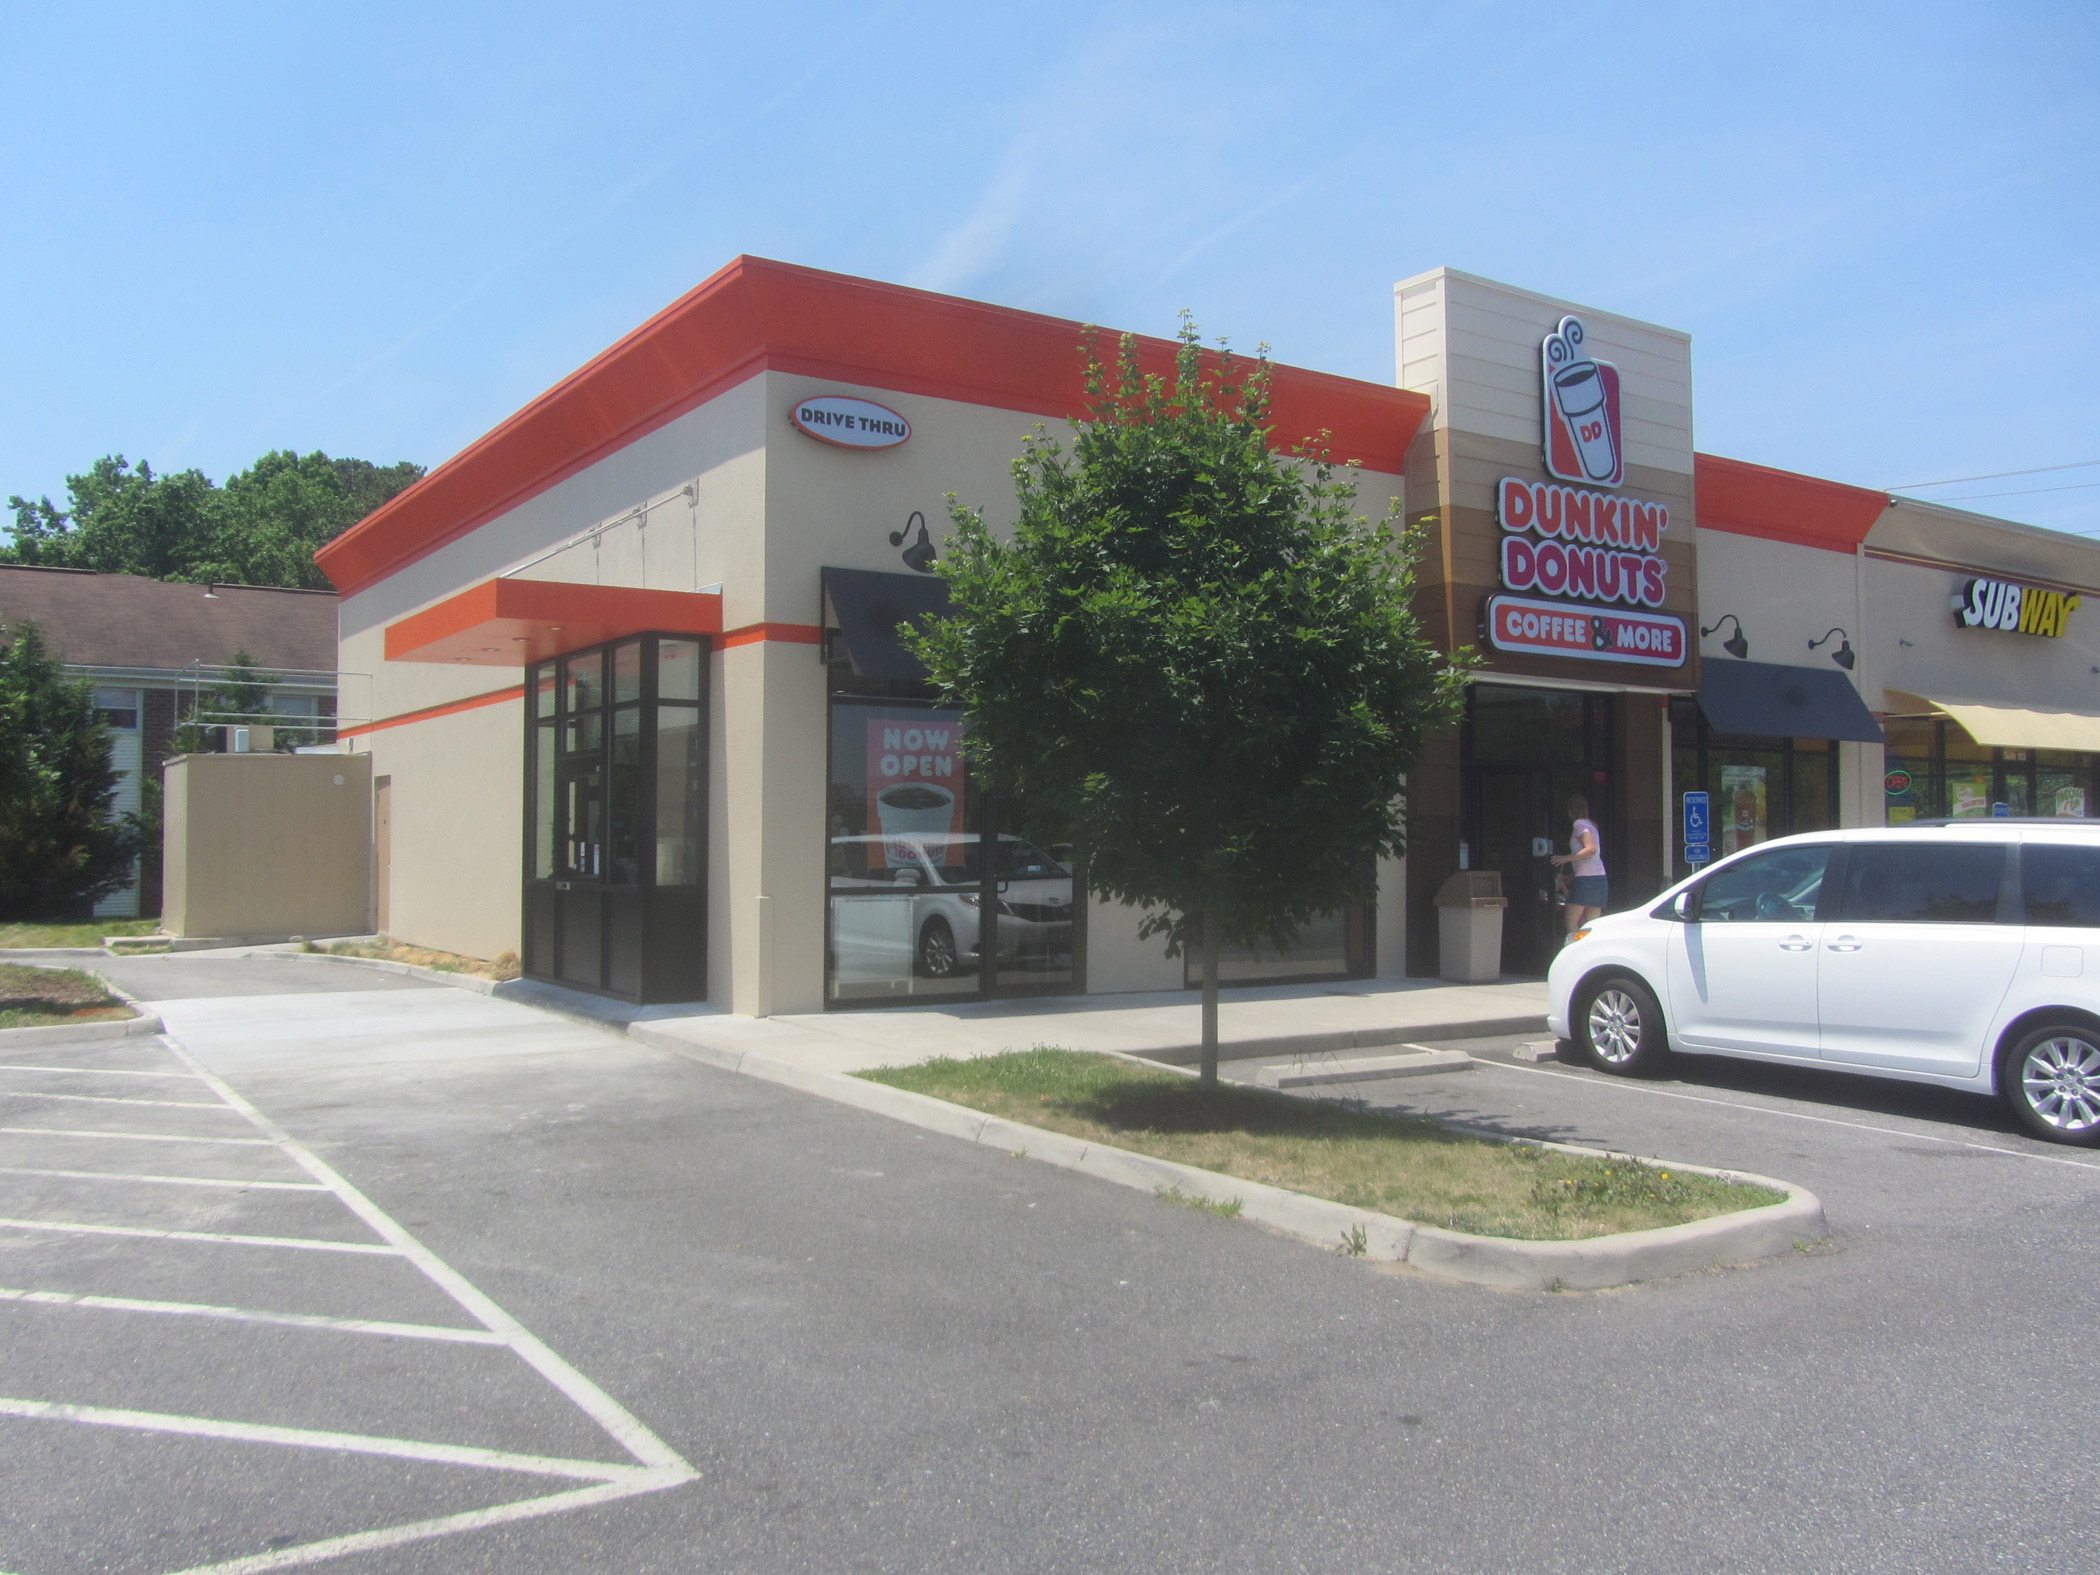 Dunkin Donuts Virginia Beach Hours